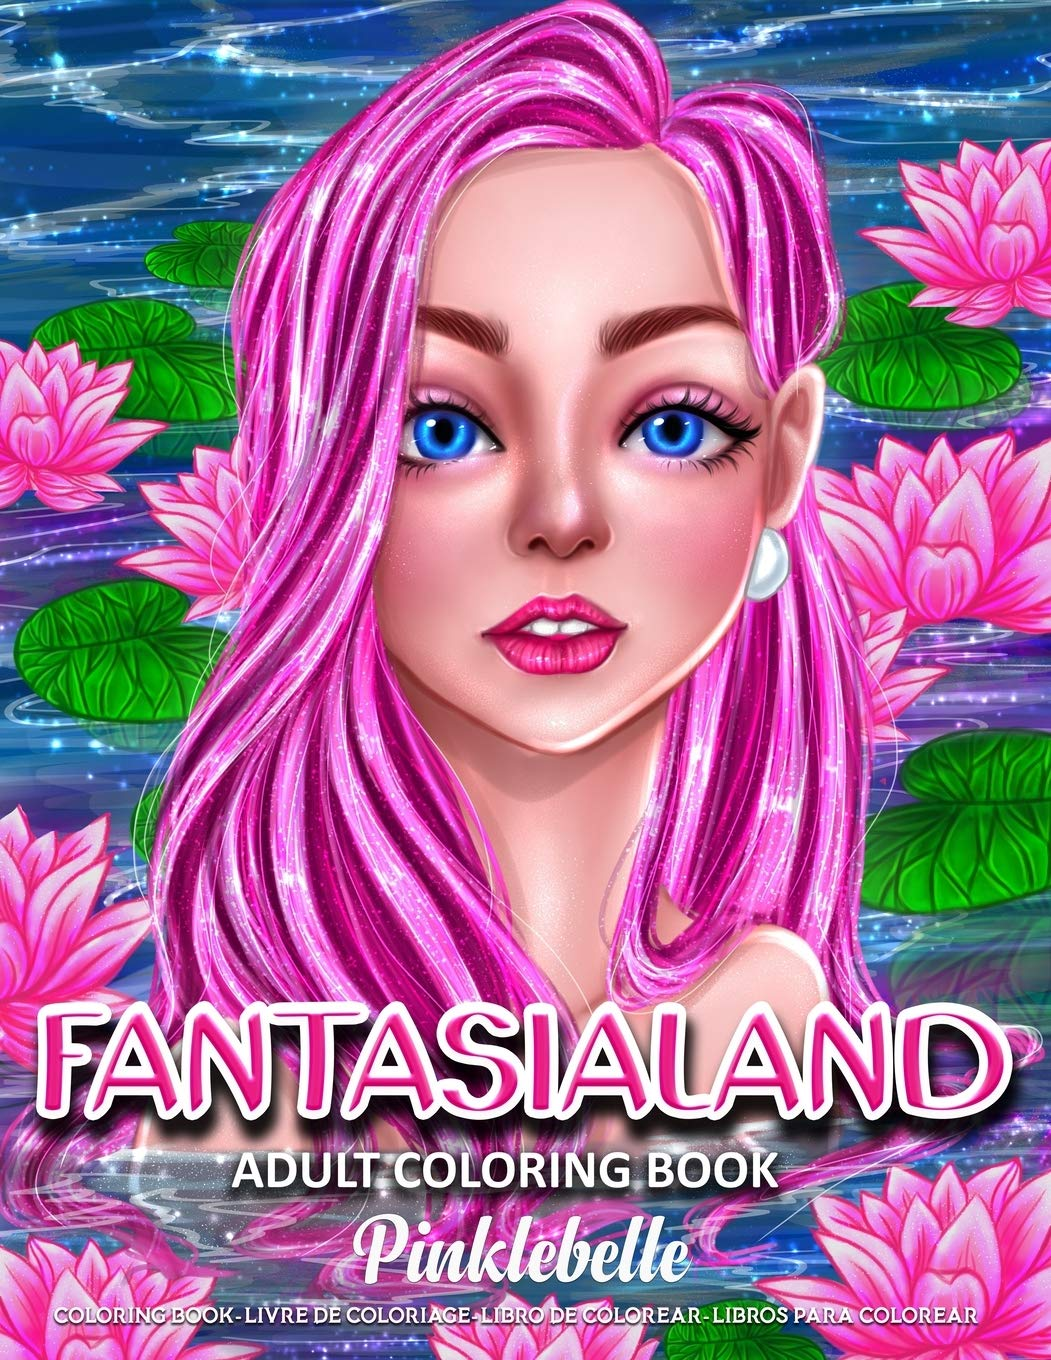 Fantasialand An Adult Coloring Book Featuring Fantasy Coloring Pages For Adults Relaxation Perfect For Coloring Gift Book Ideas Pinklebelle 9798558213669 Amazon Com Books